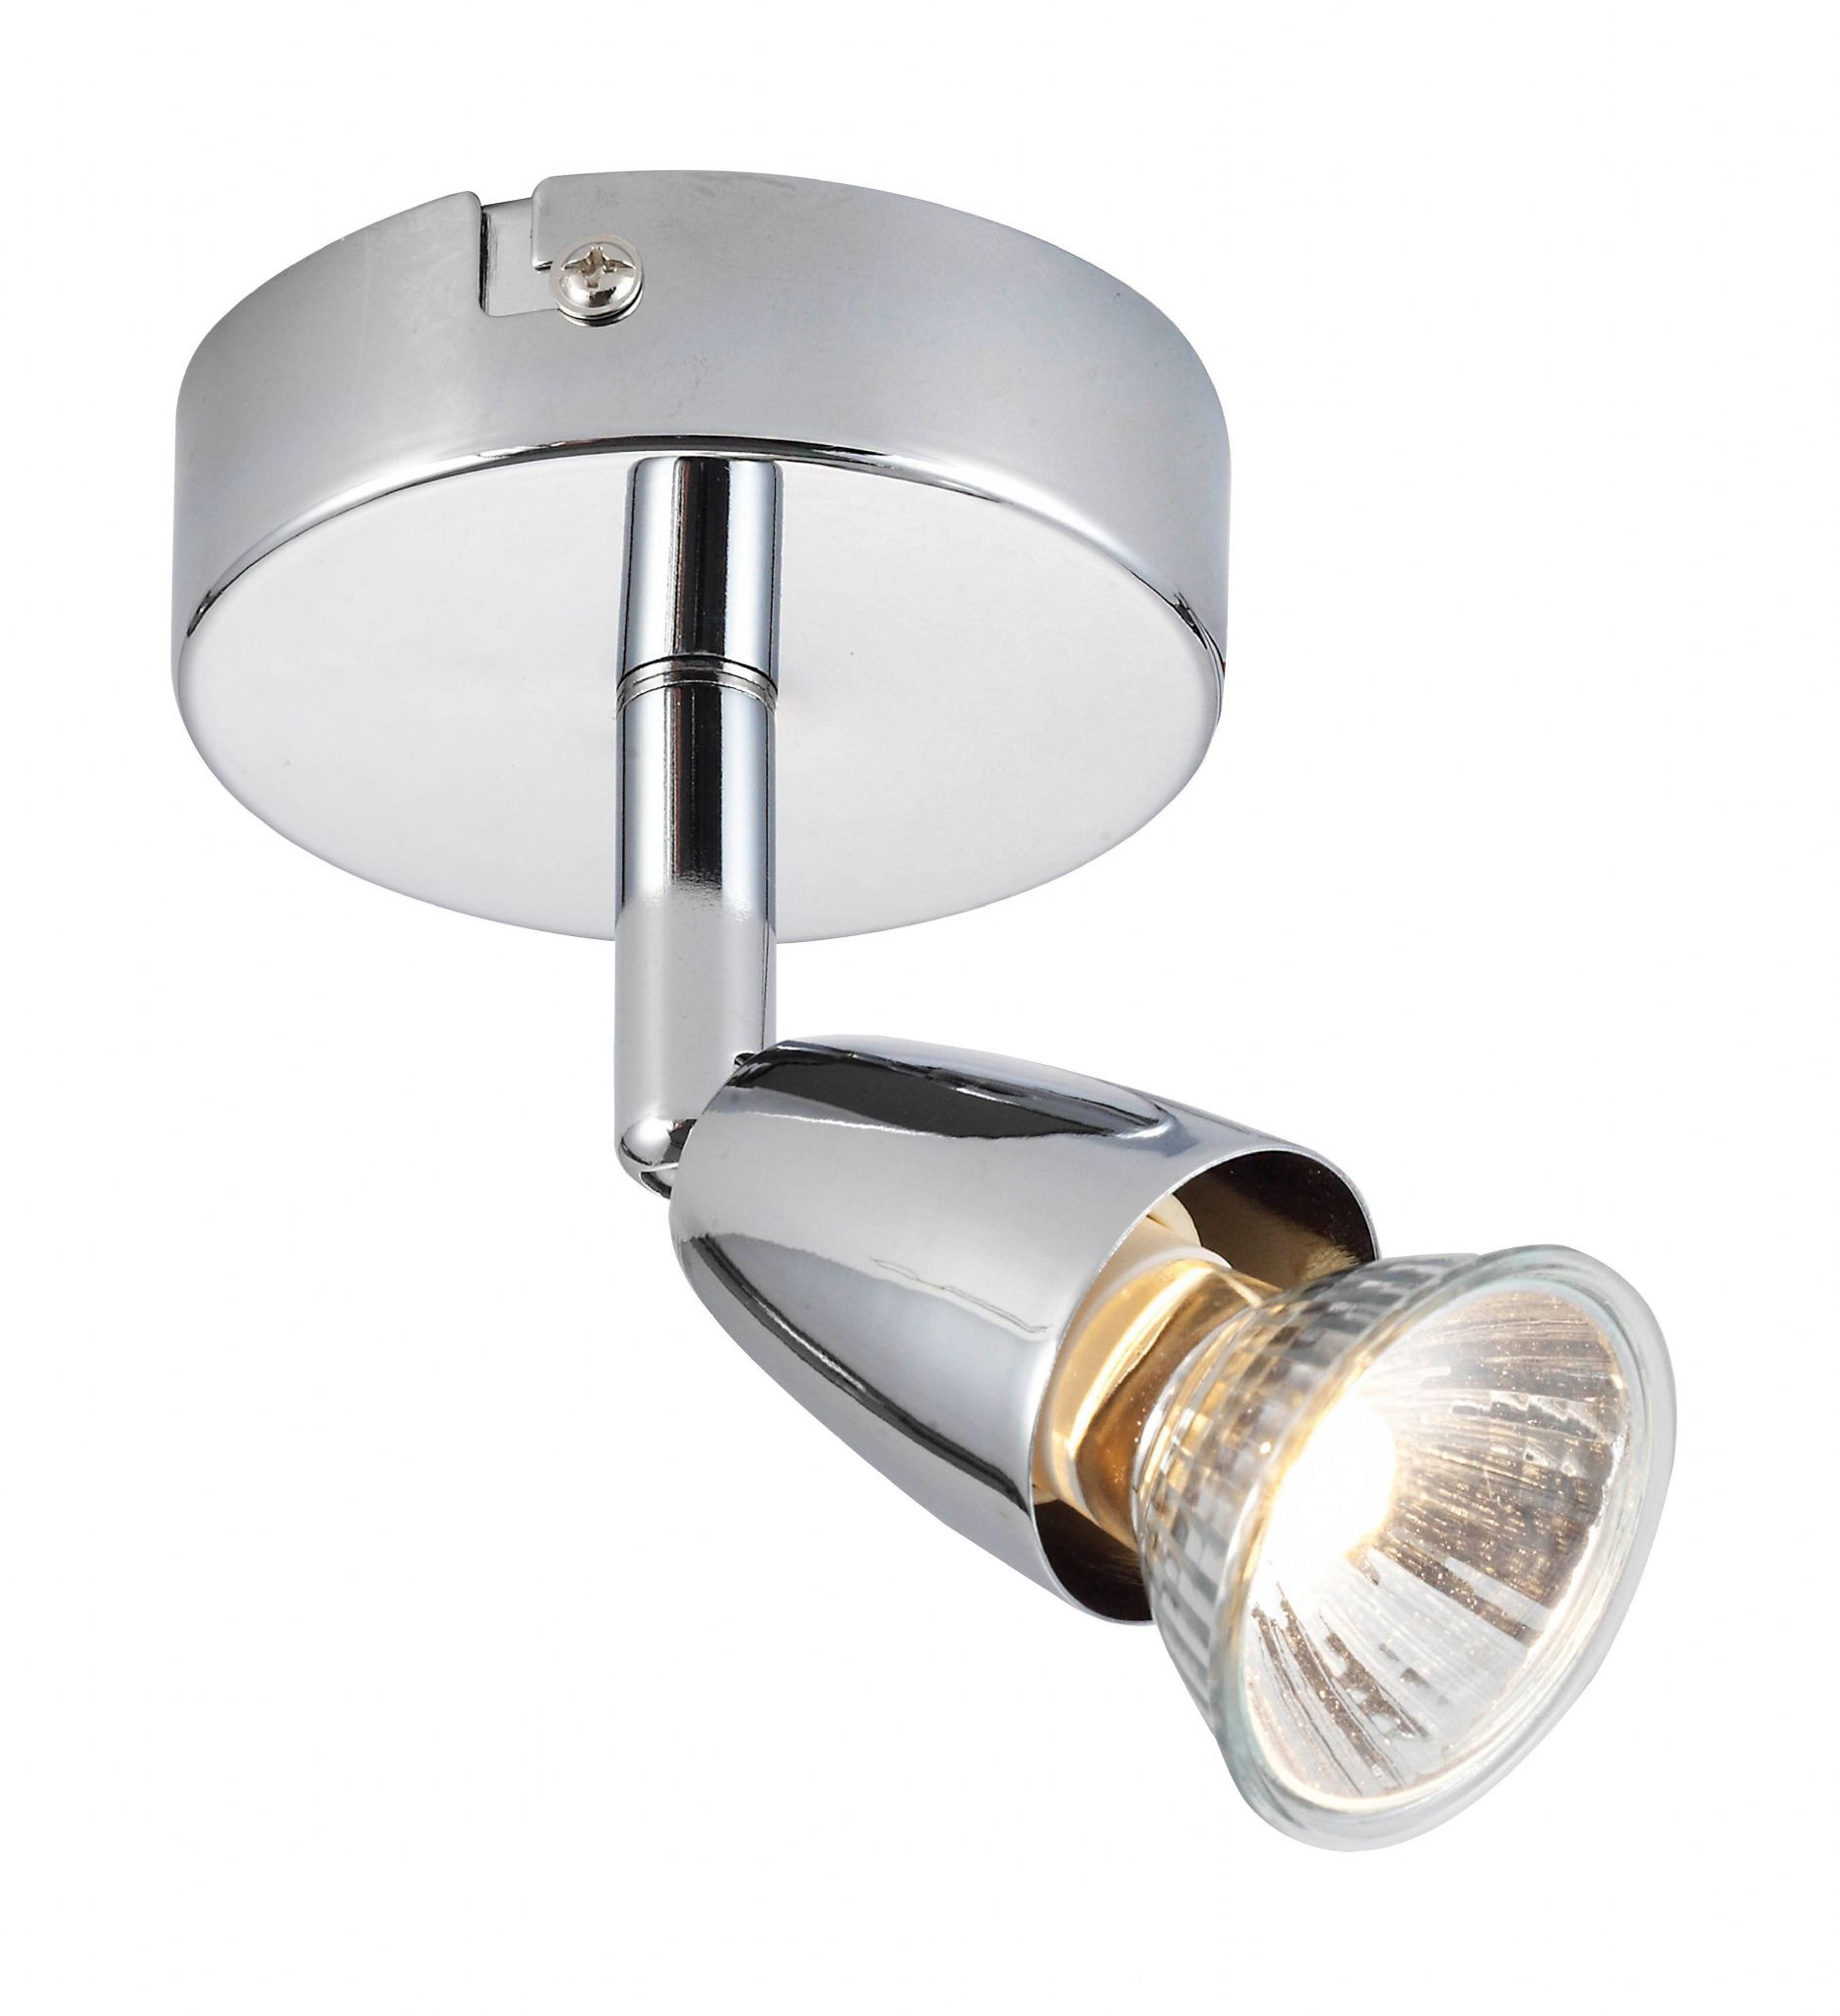 Chrome Effect Plate Spotlight 43277 By Endon